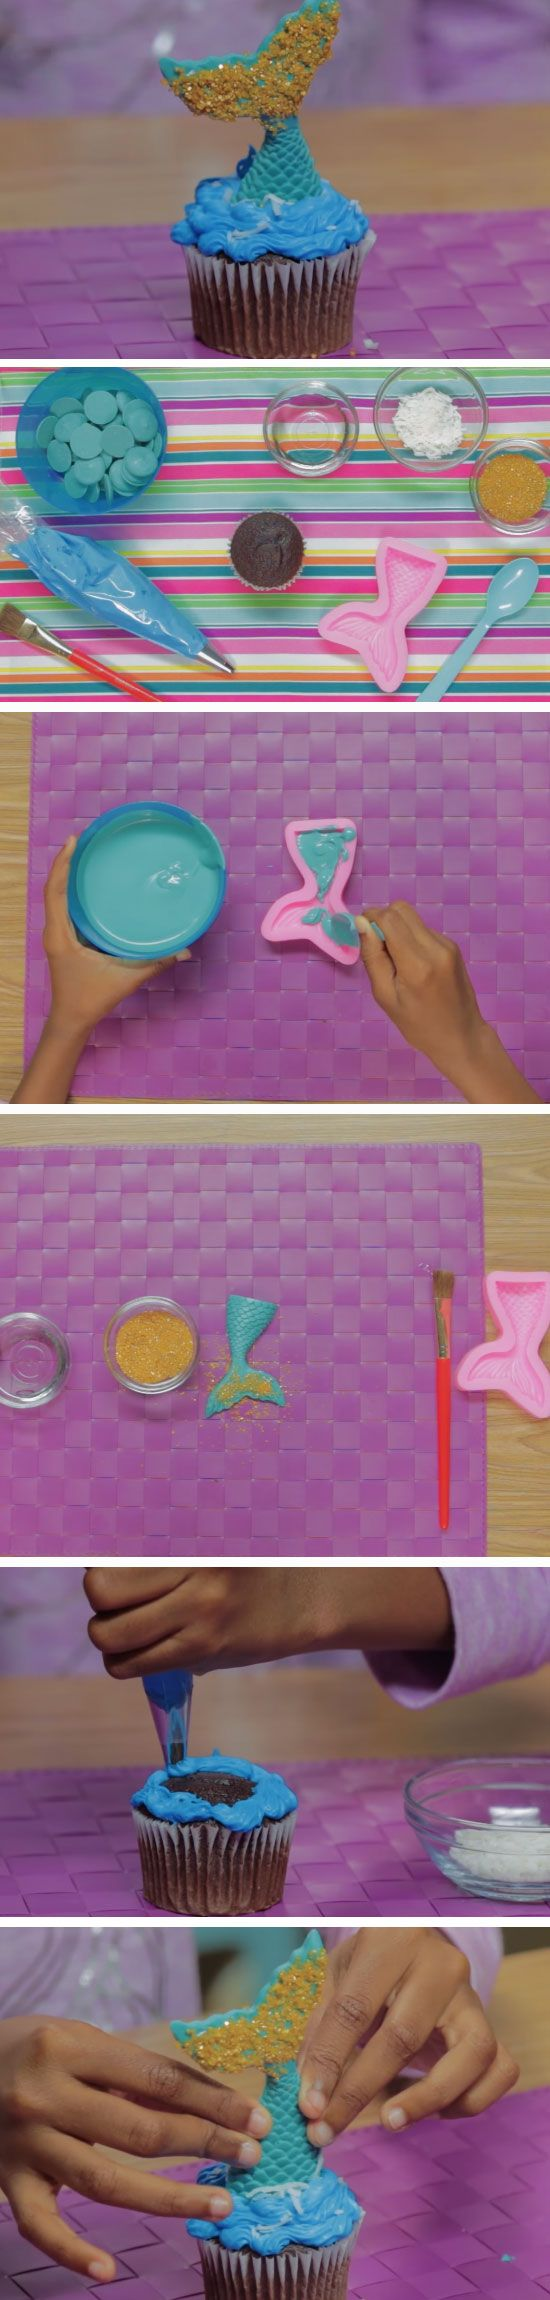 Mermaid Tail Cupcake   Easy Birthday Party Food Ideas for Kids   Easy DIY Princess Party Ideas Food